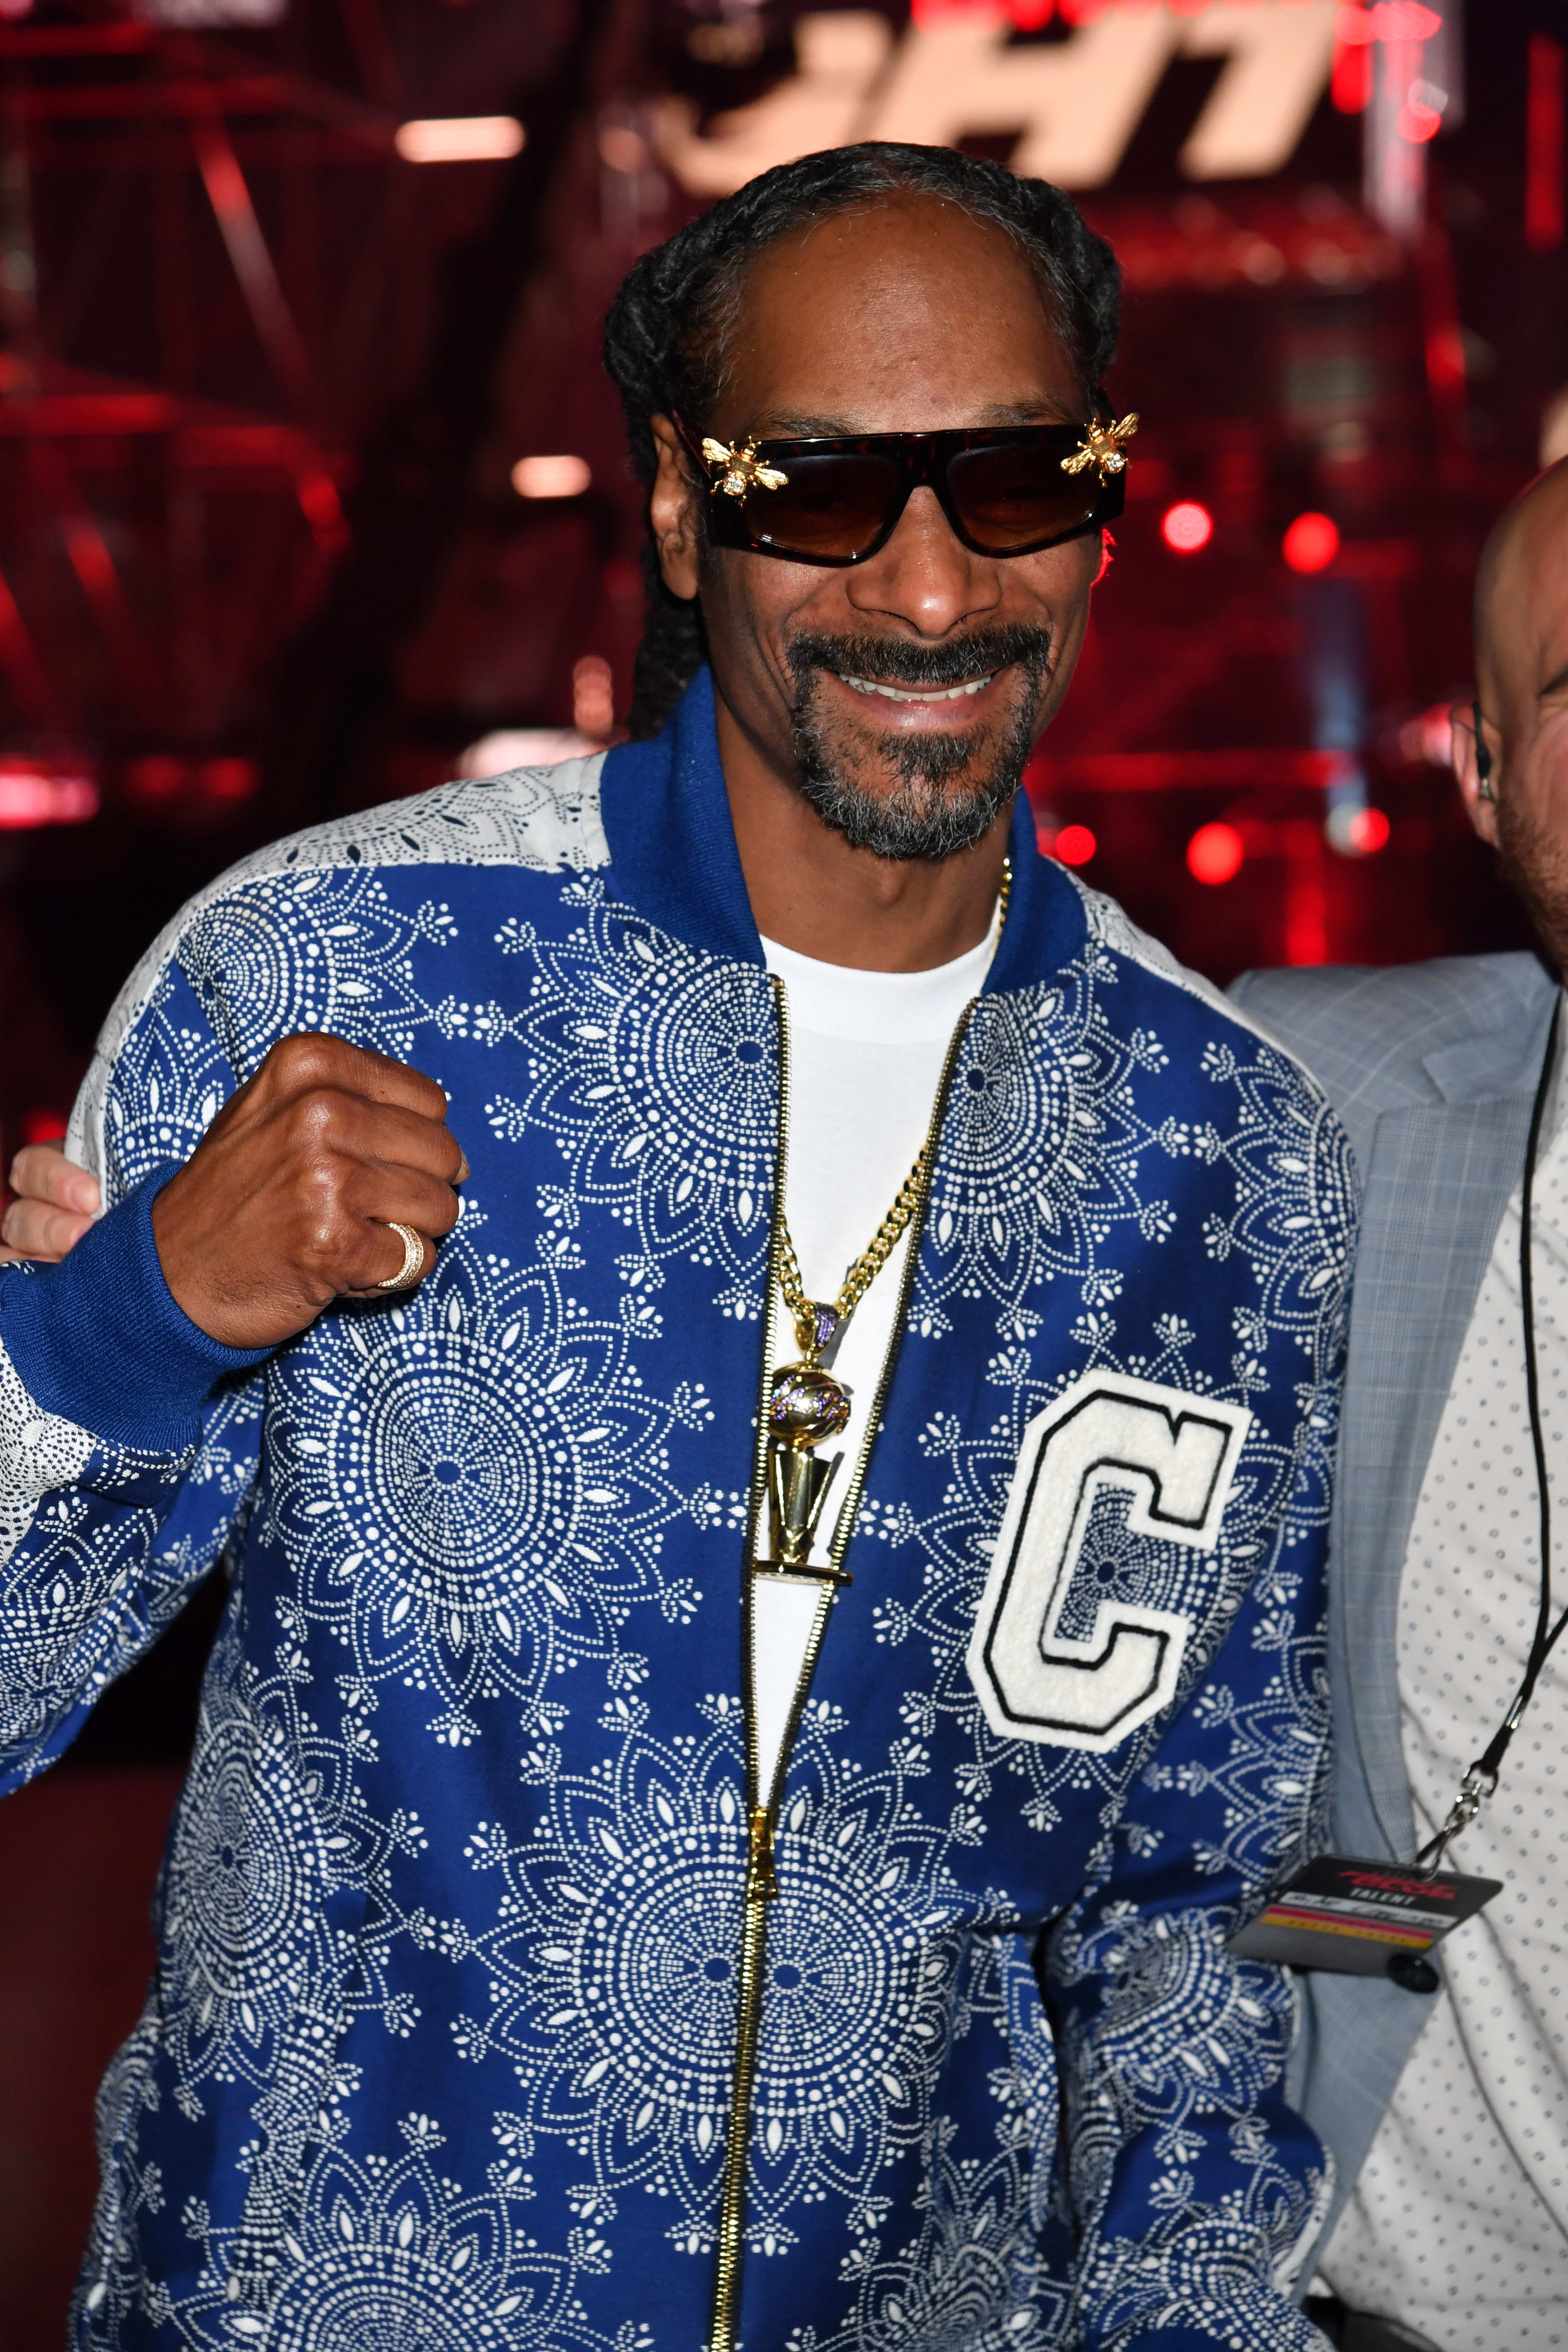 Snoop Dogg at an event in Atlanta in 2021